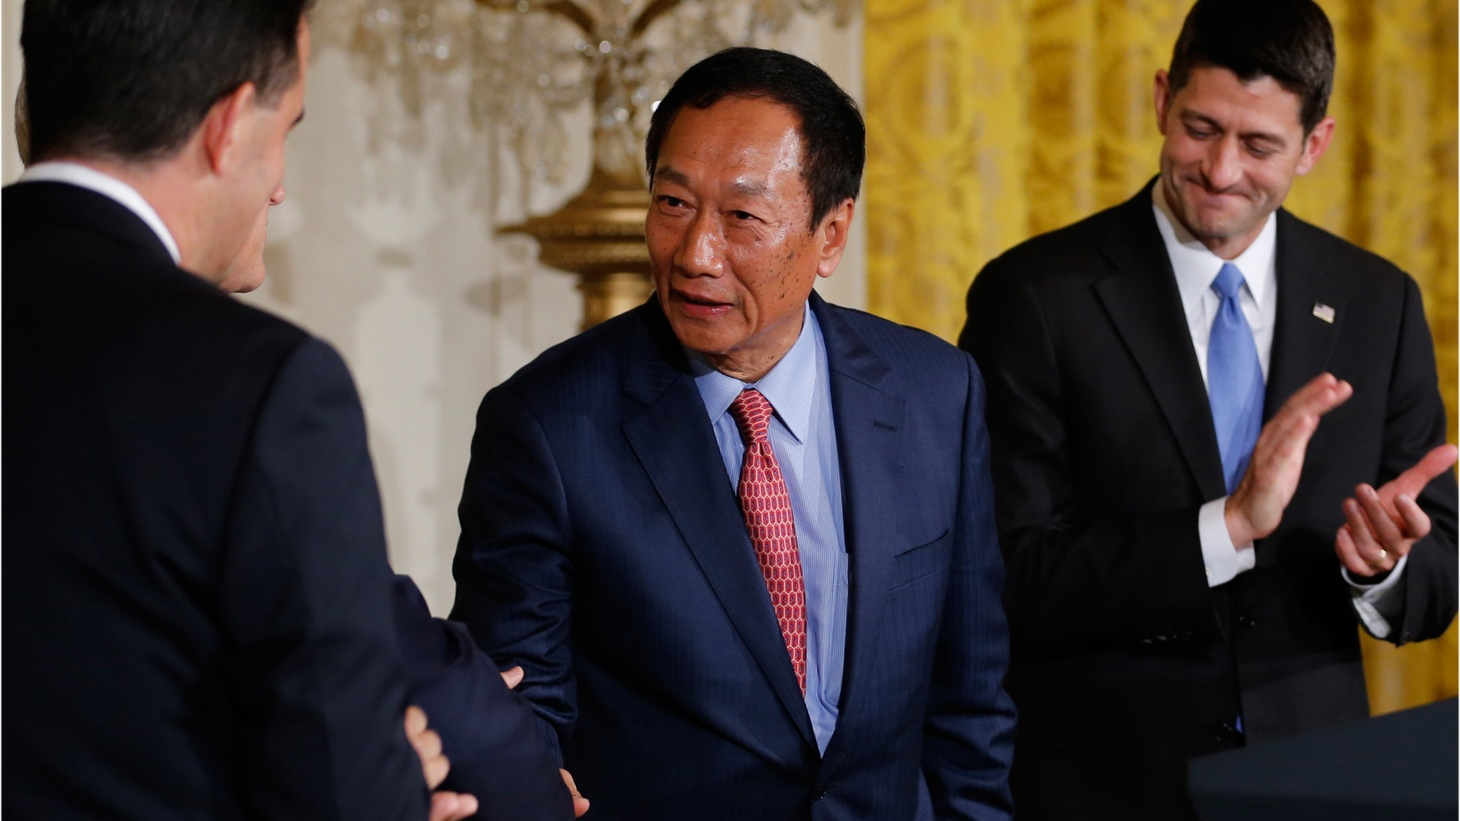 Foxconn, the Taiwanese company that makes iPhones, is planning to build a $10 billion factory in Wisconsin. But the company has a habit of not following through with big announcements.